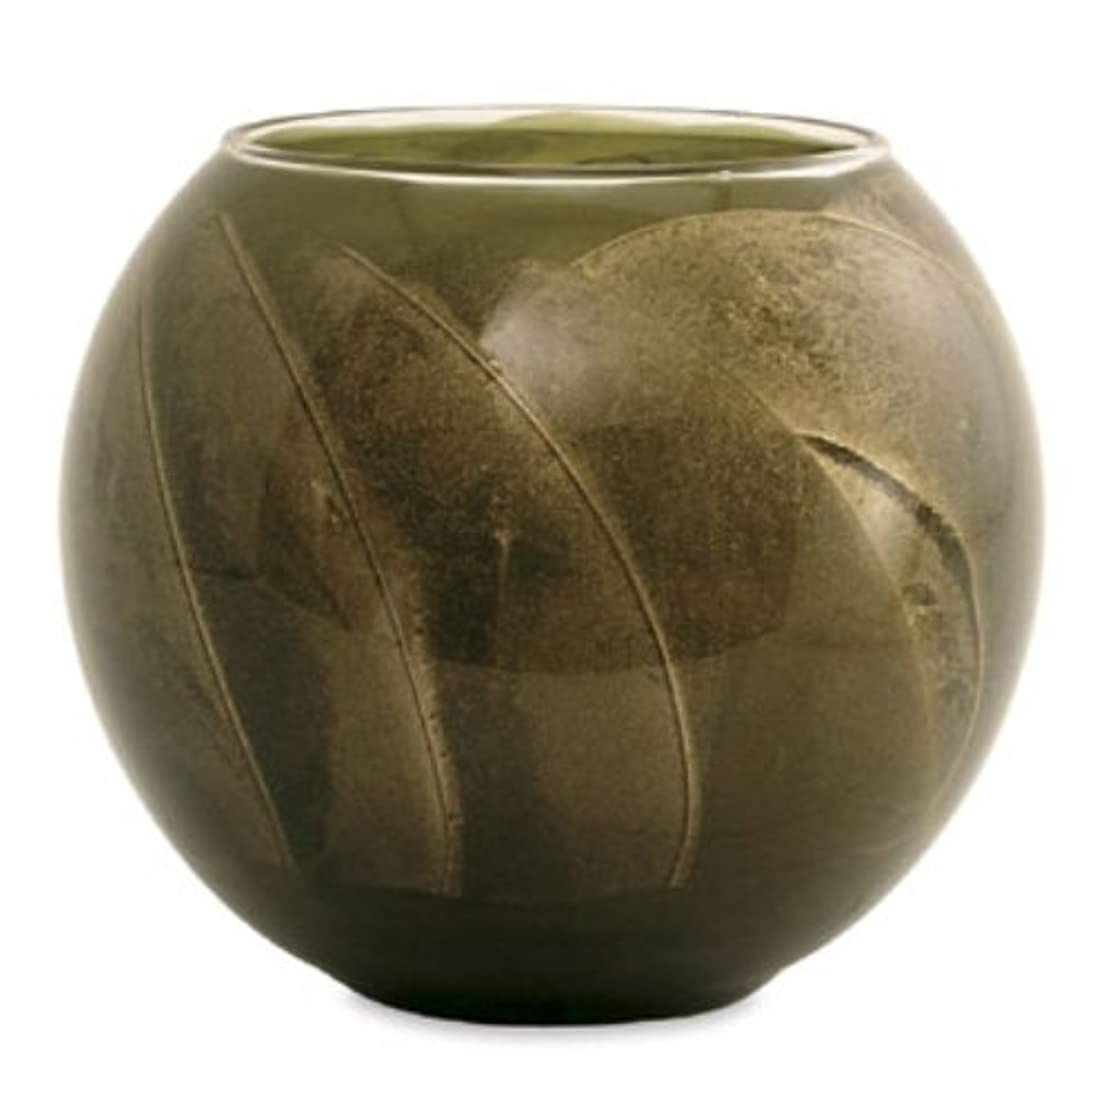 シーズンエチケット司書Northern Lights Candles Esque Polished Globe - 4 inch Olive by Northern Lights Candles [並行輸入品]